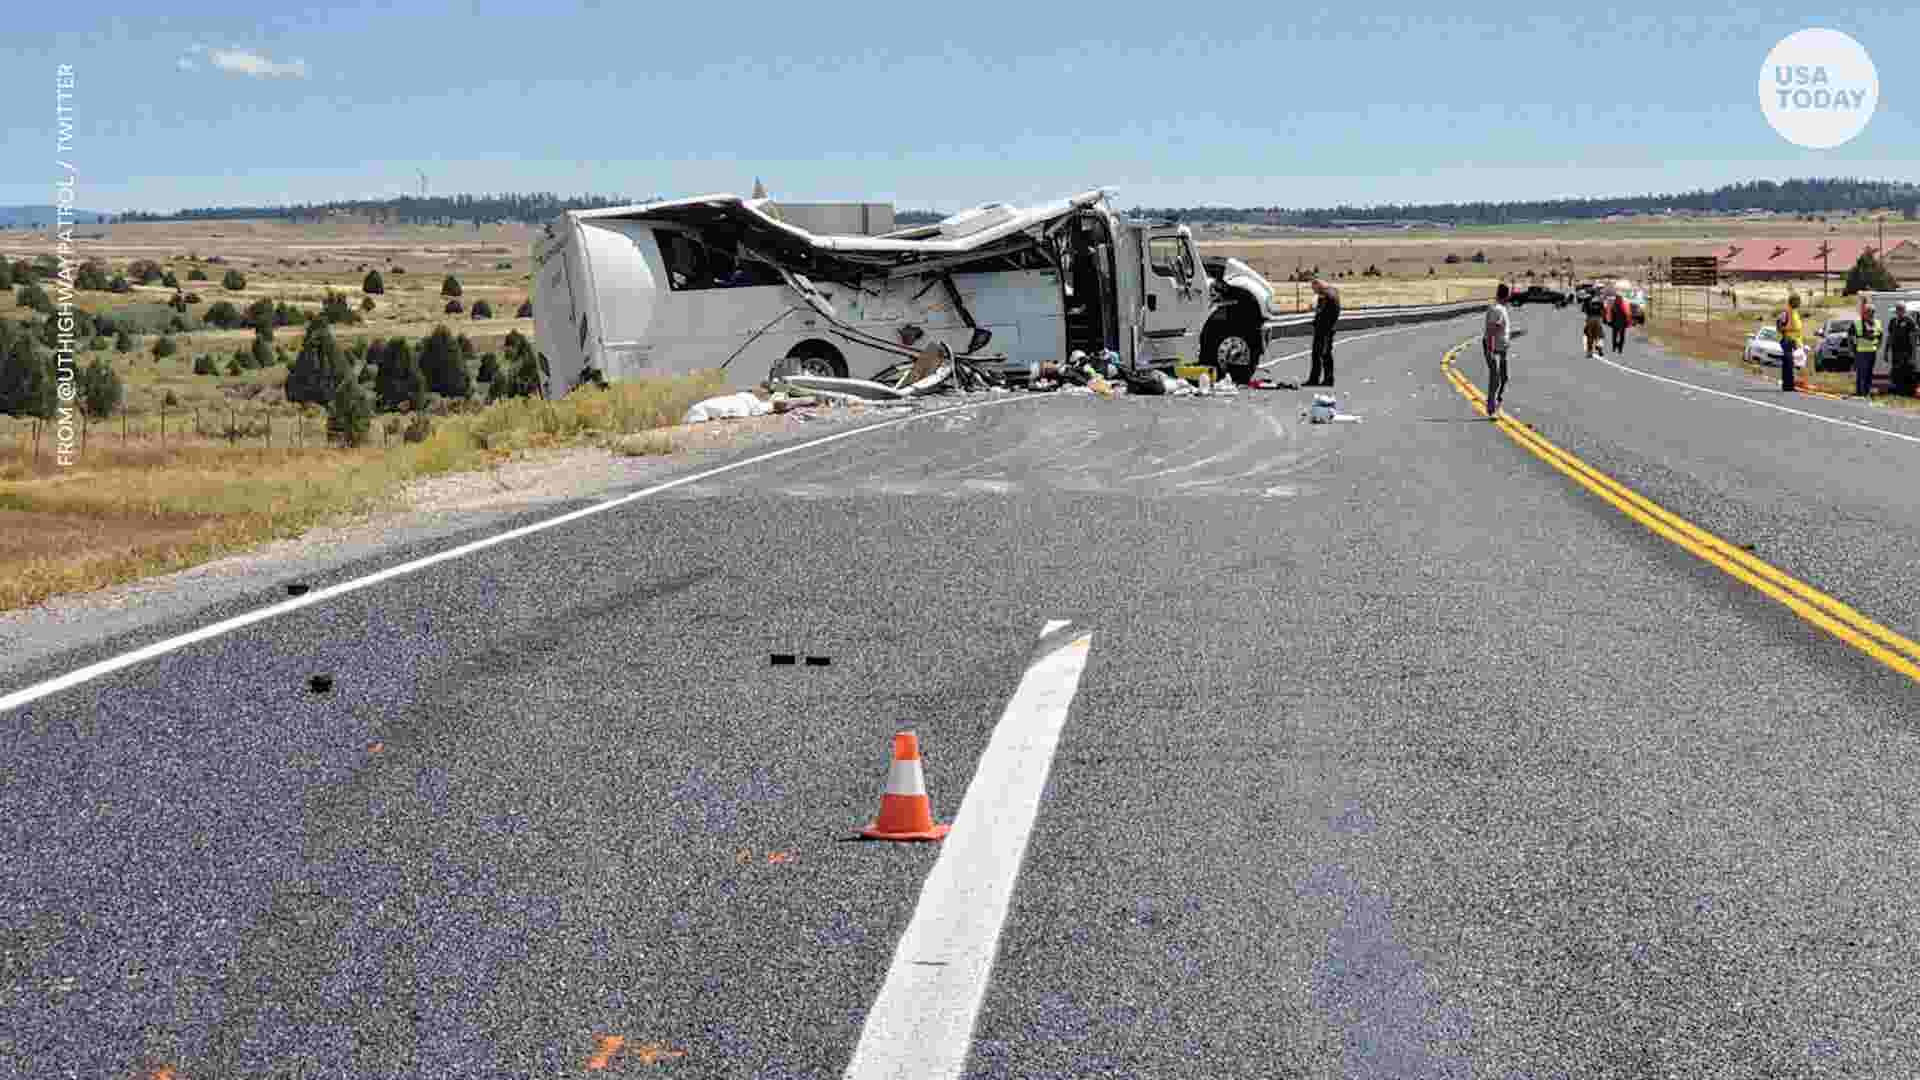 Bryce Canyon tour bus crash in Utah: What we know now